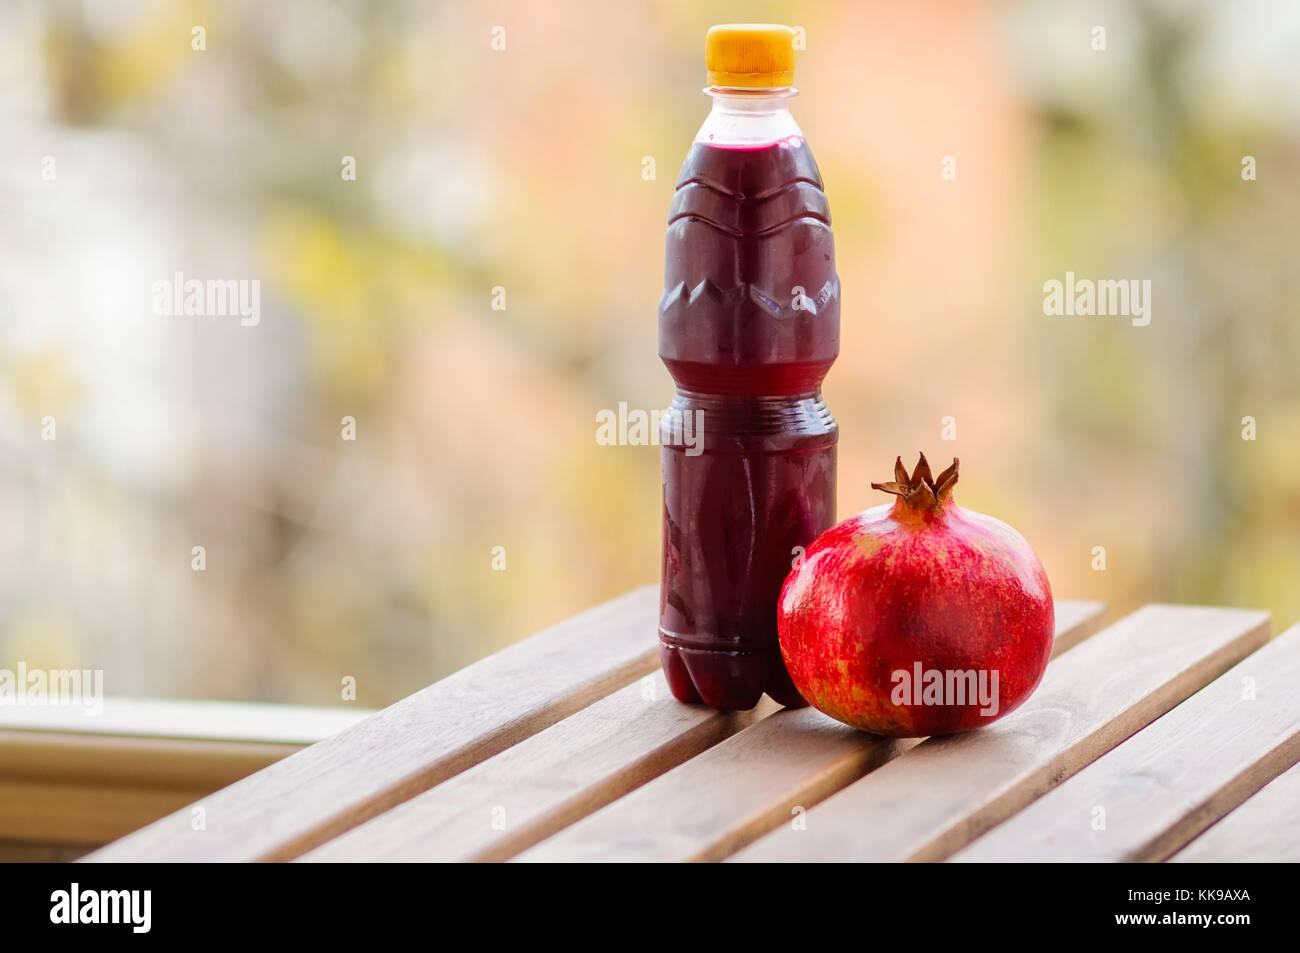 Pomegranate and bottle of juice on wooden table - Stock Image